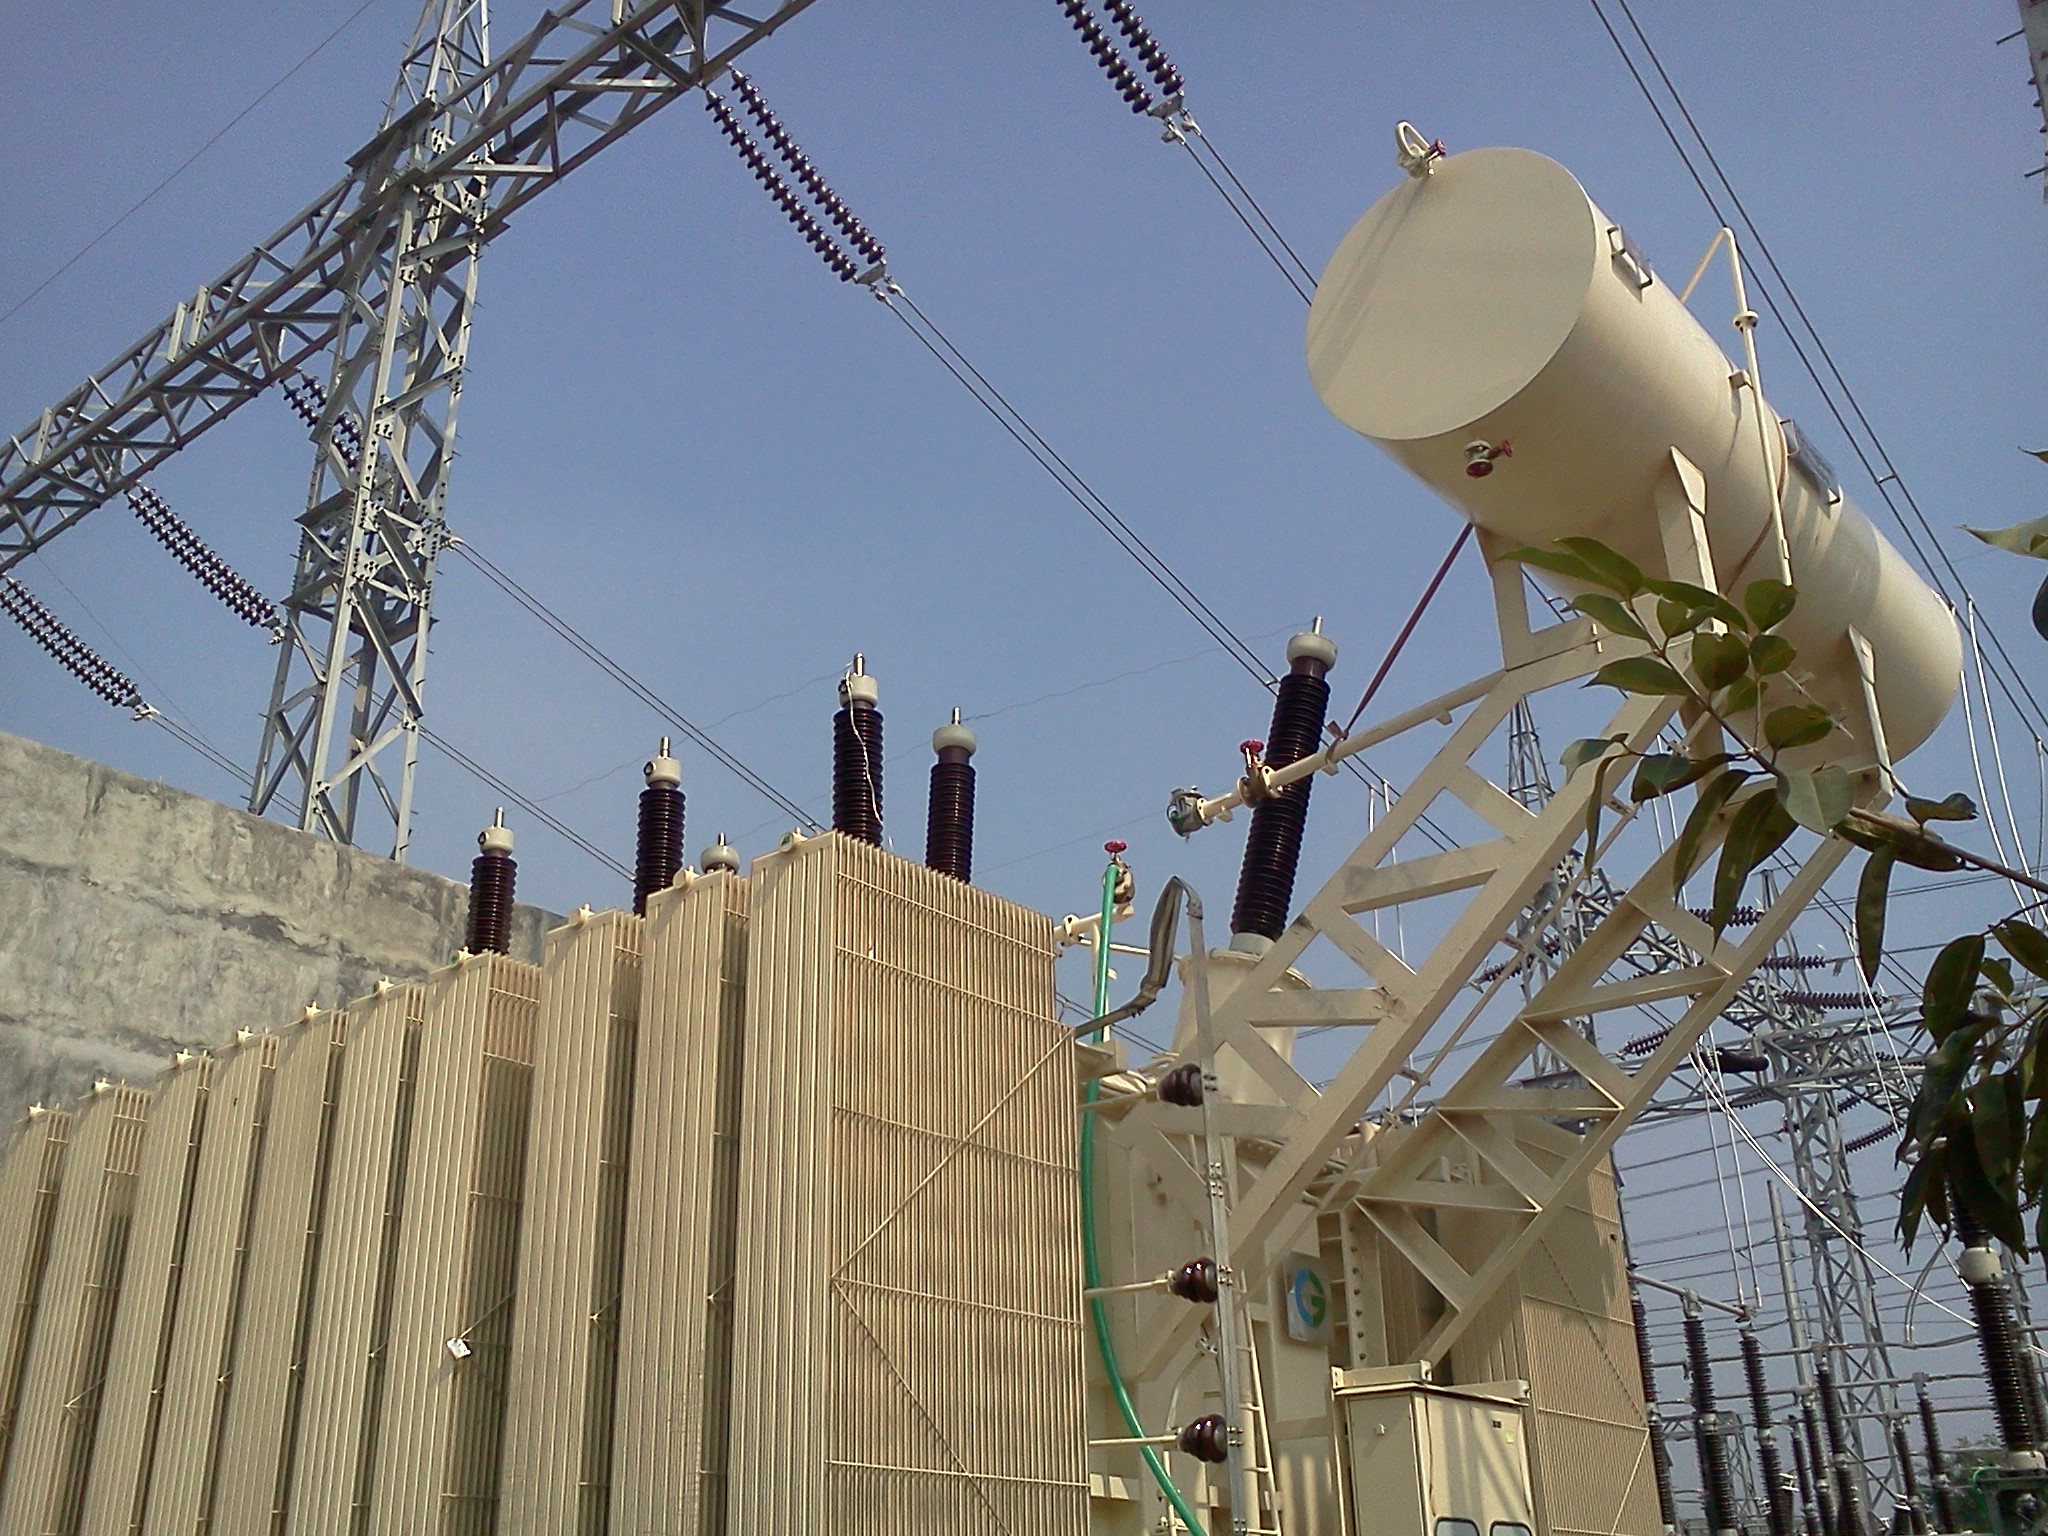 230kV SIDDHIRGANJ Substation